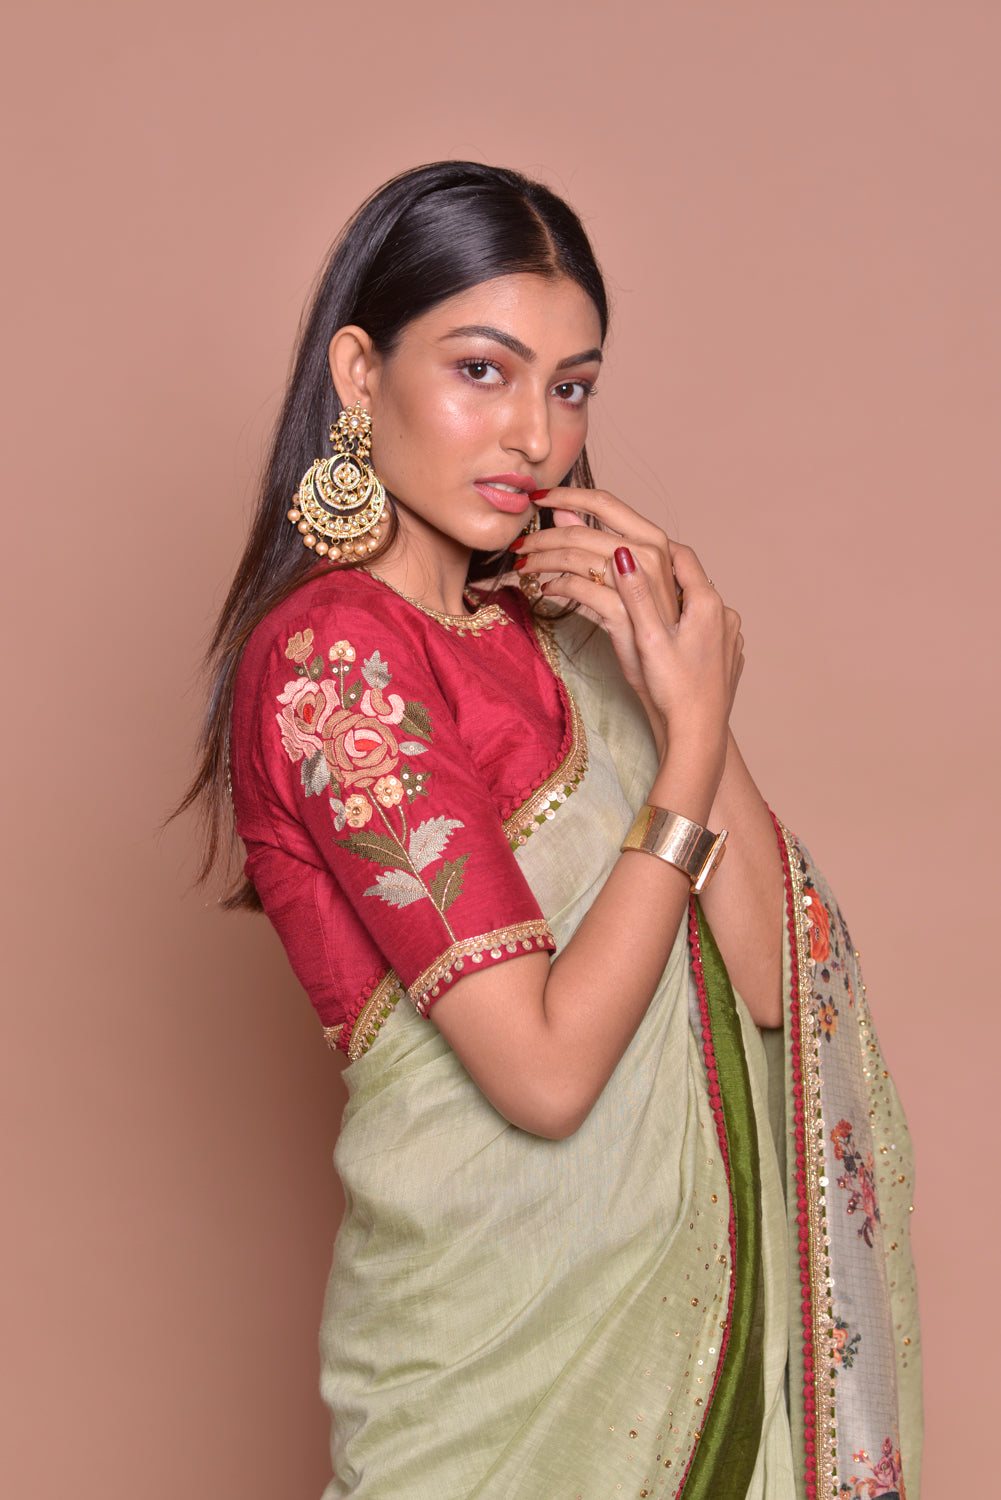 Buy exquisite pista green embroidered saree online in USA with floral border and red embroidered saree blouse. Be occasion ready with exquisite range of designer sarees with blouse, bridal sarees from Pure Elegance Indian boutique in USA.-closeup